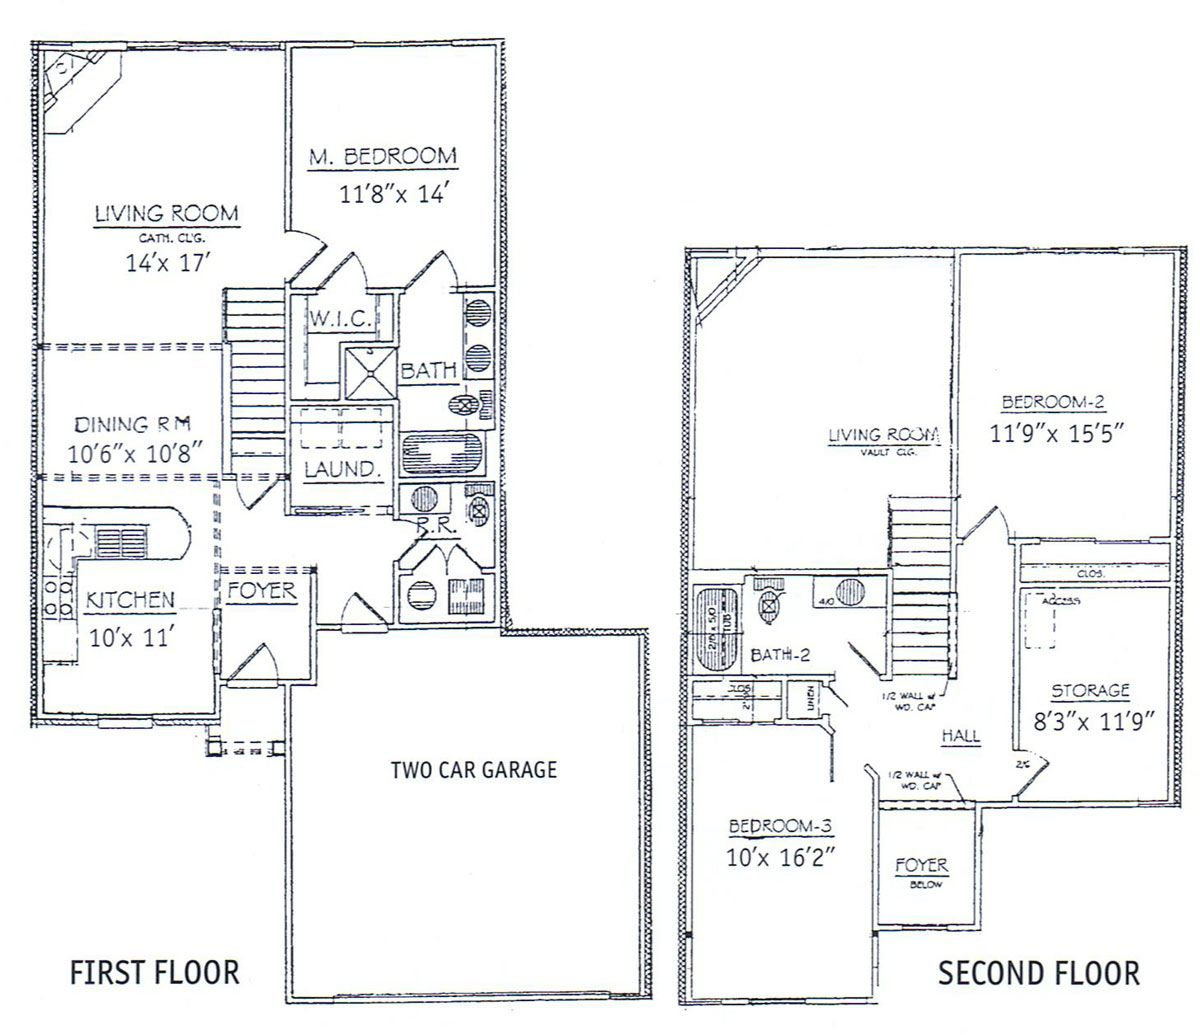 3 bedrooms floor plans 2 story bdrm basement the two Best 2 story house plans